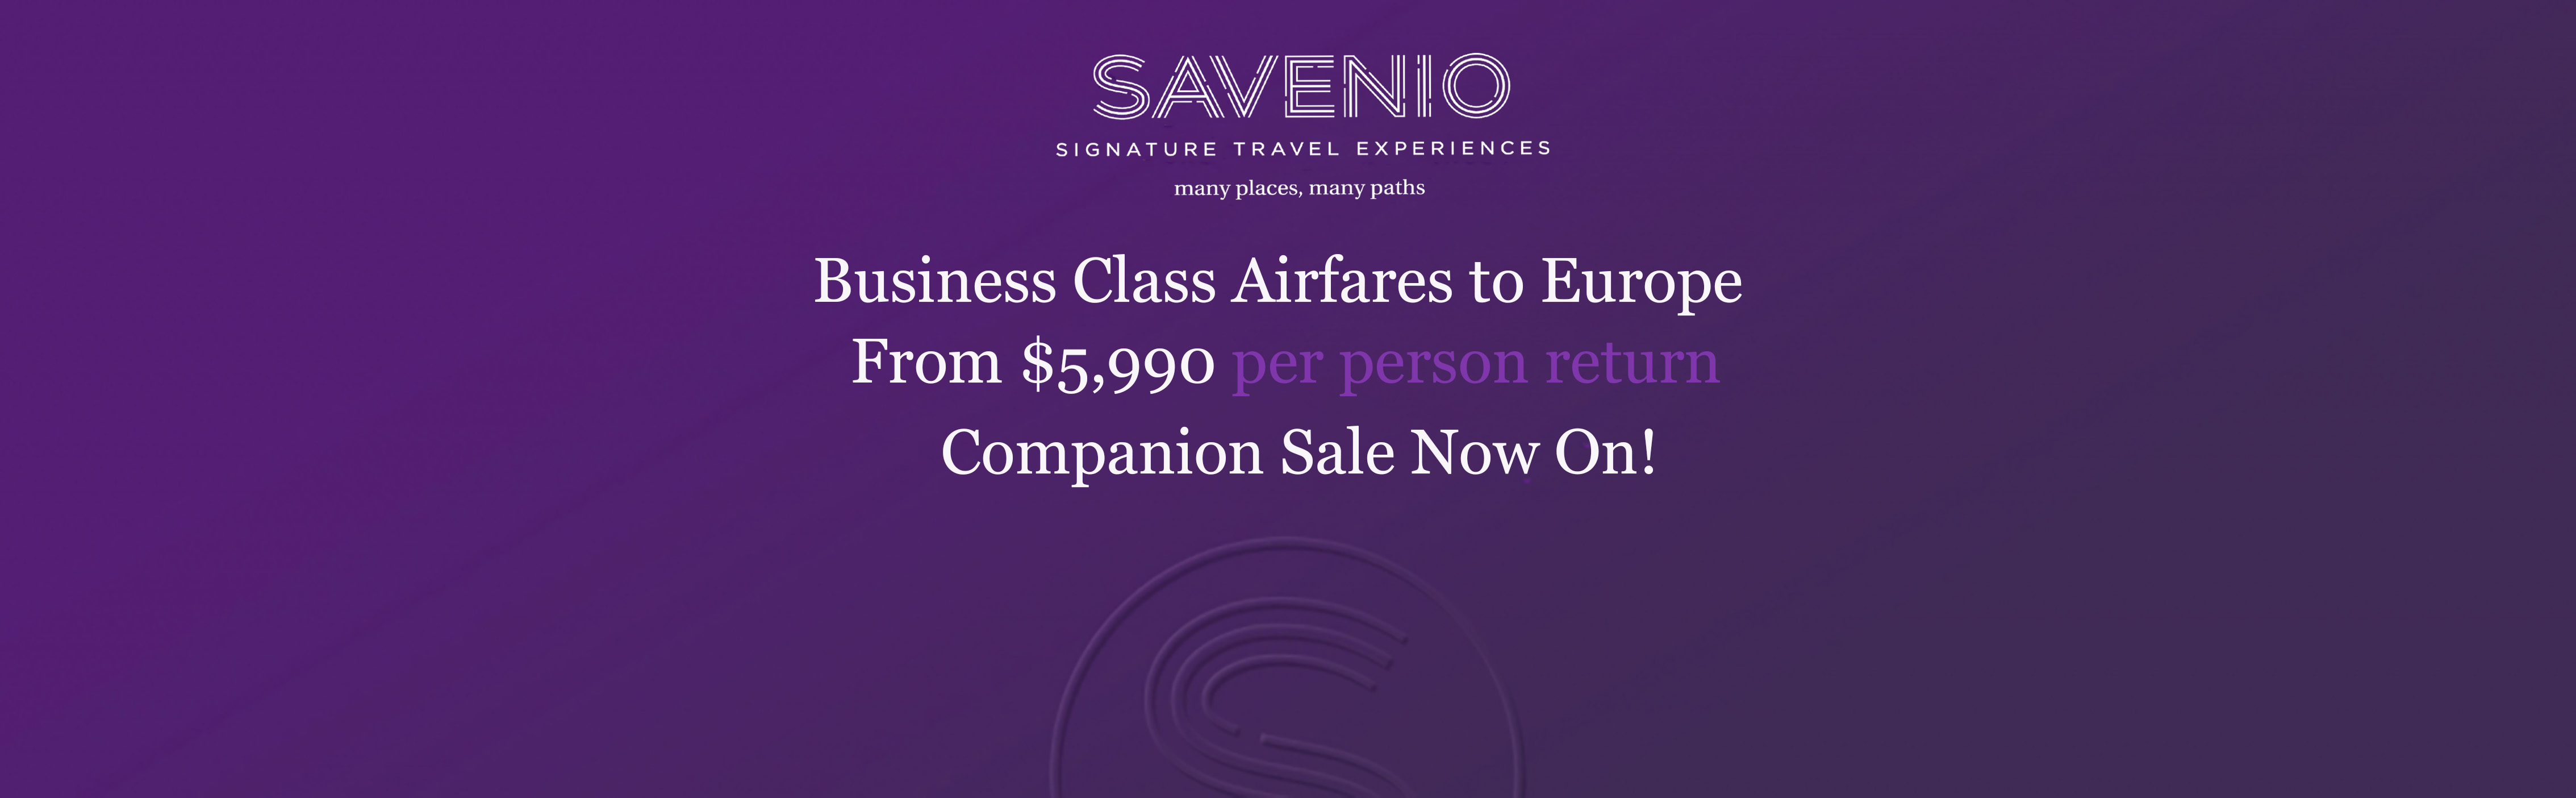 BUSINESS-CLASS-AIRFARES-RE-SIZED-2